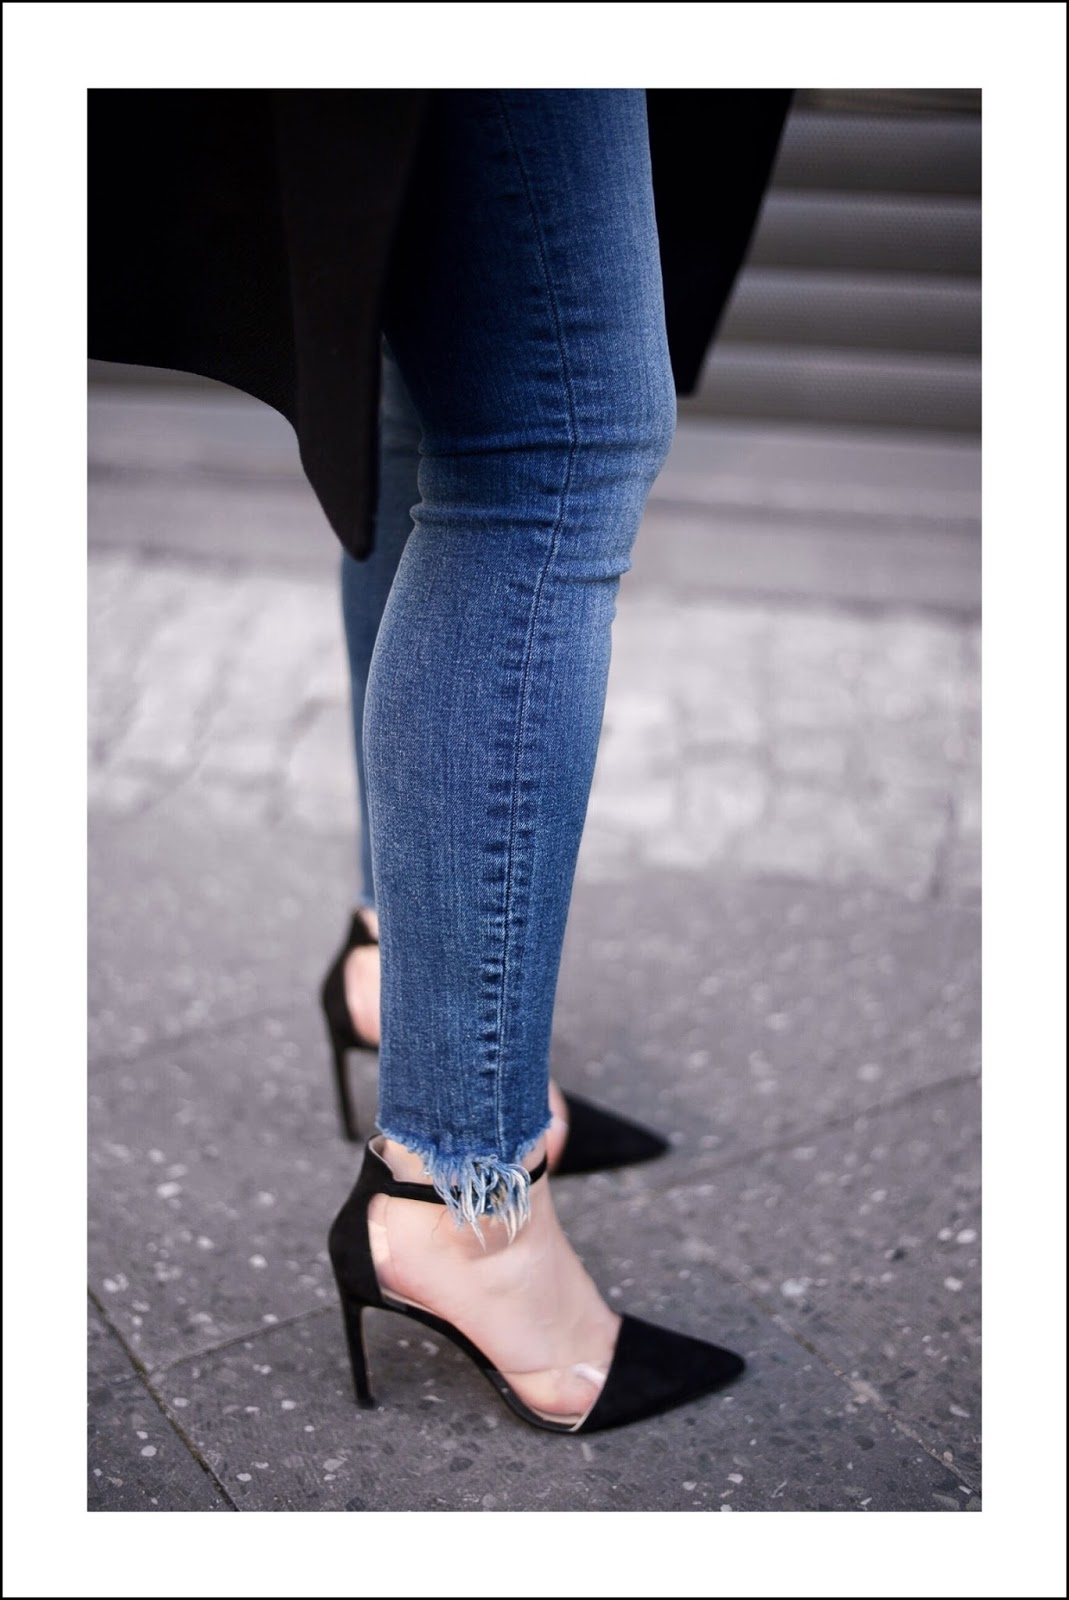 zara pumps and fringed jeans